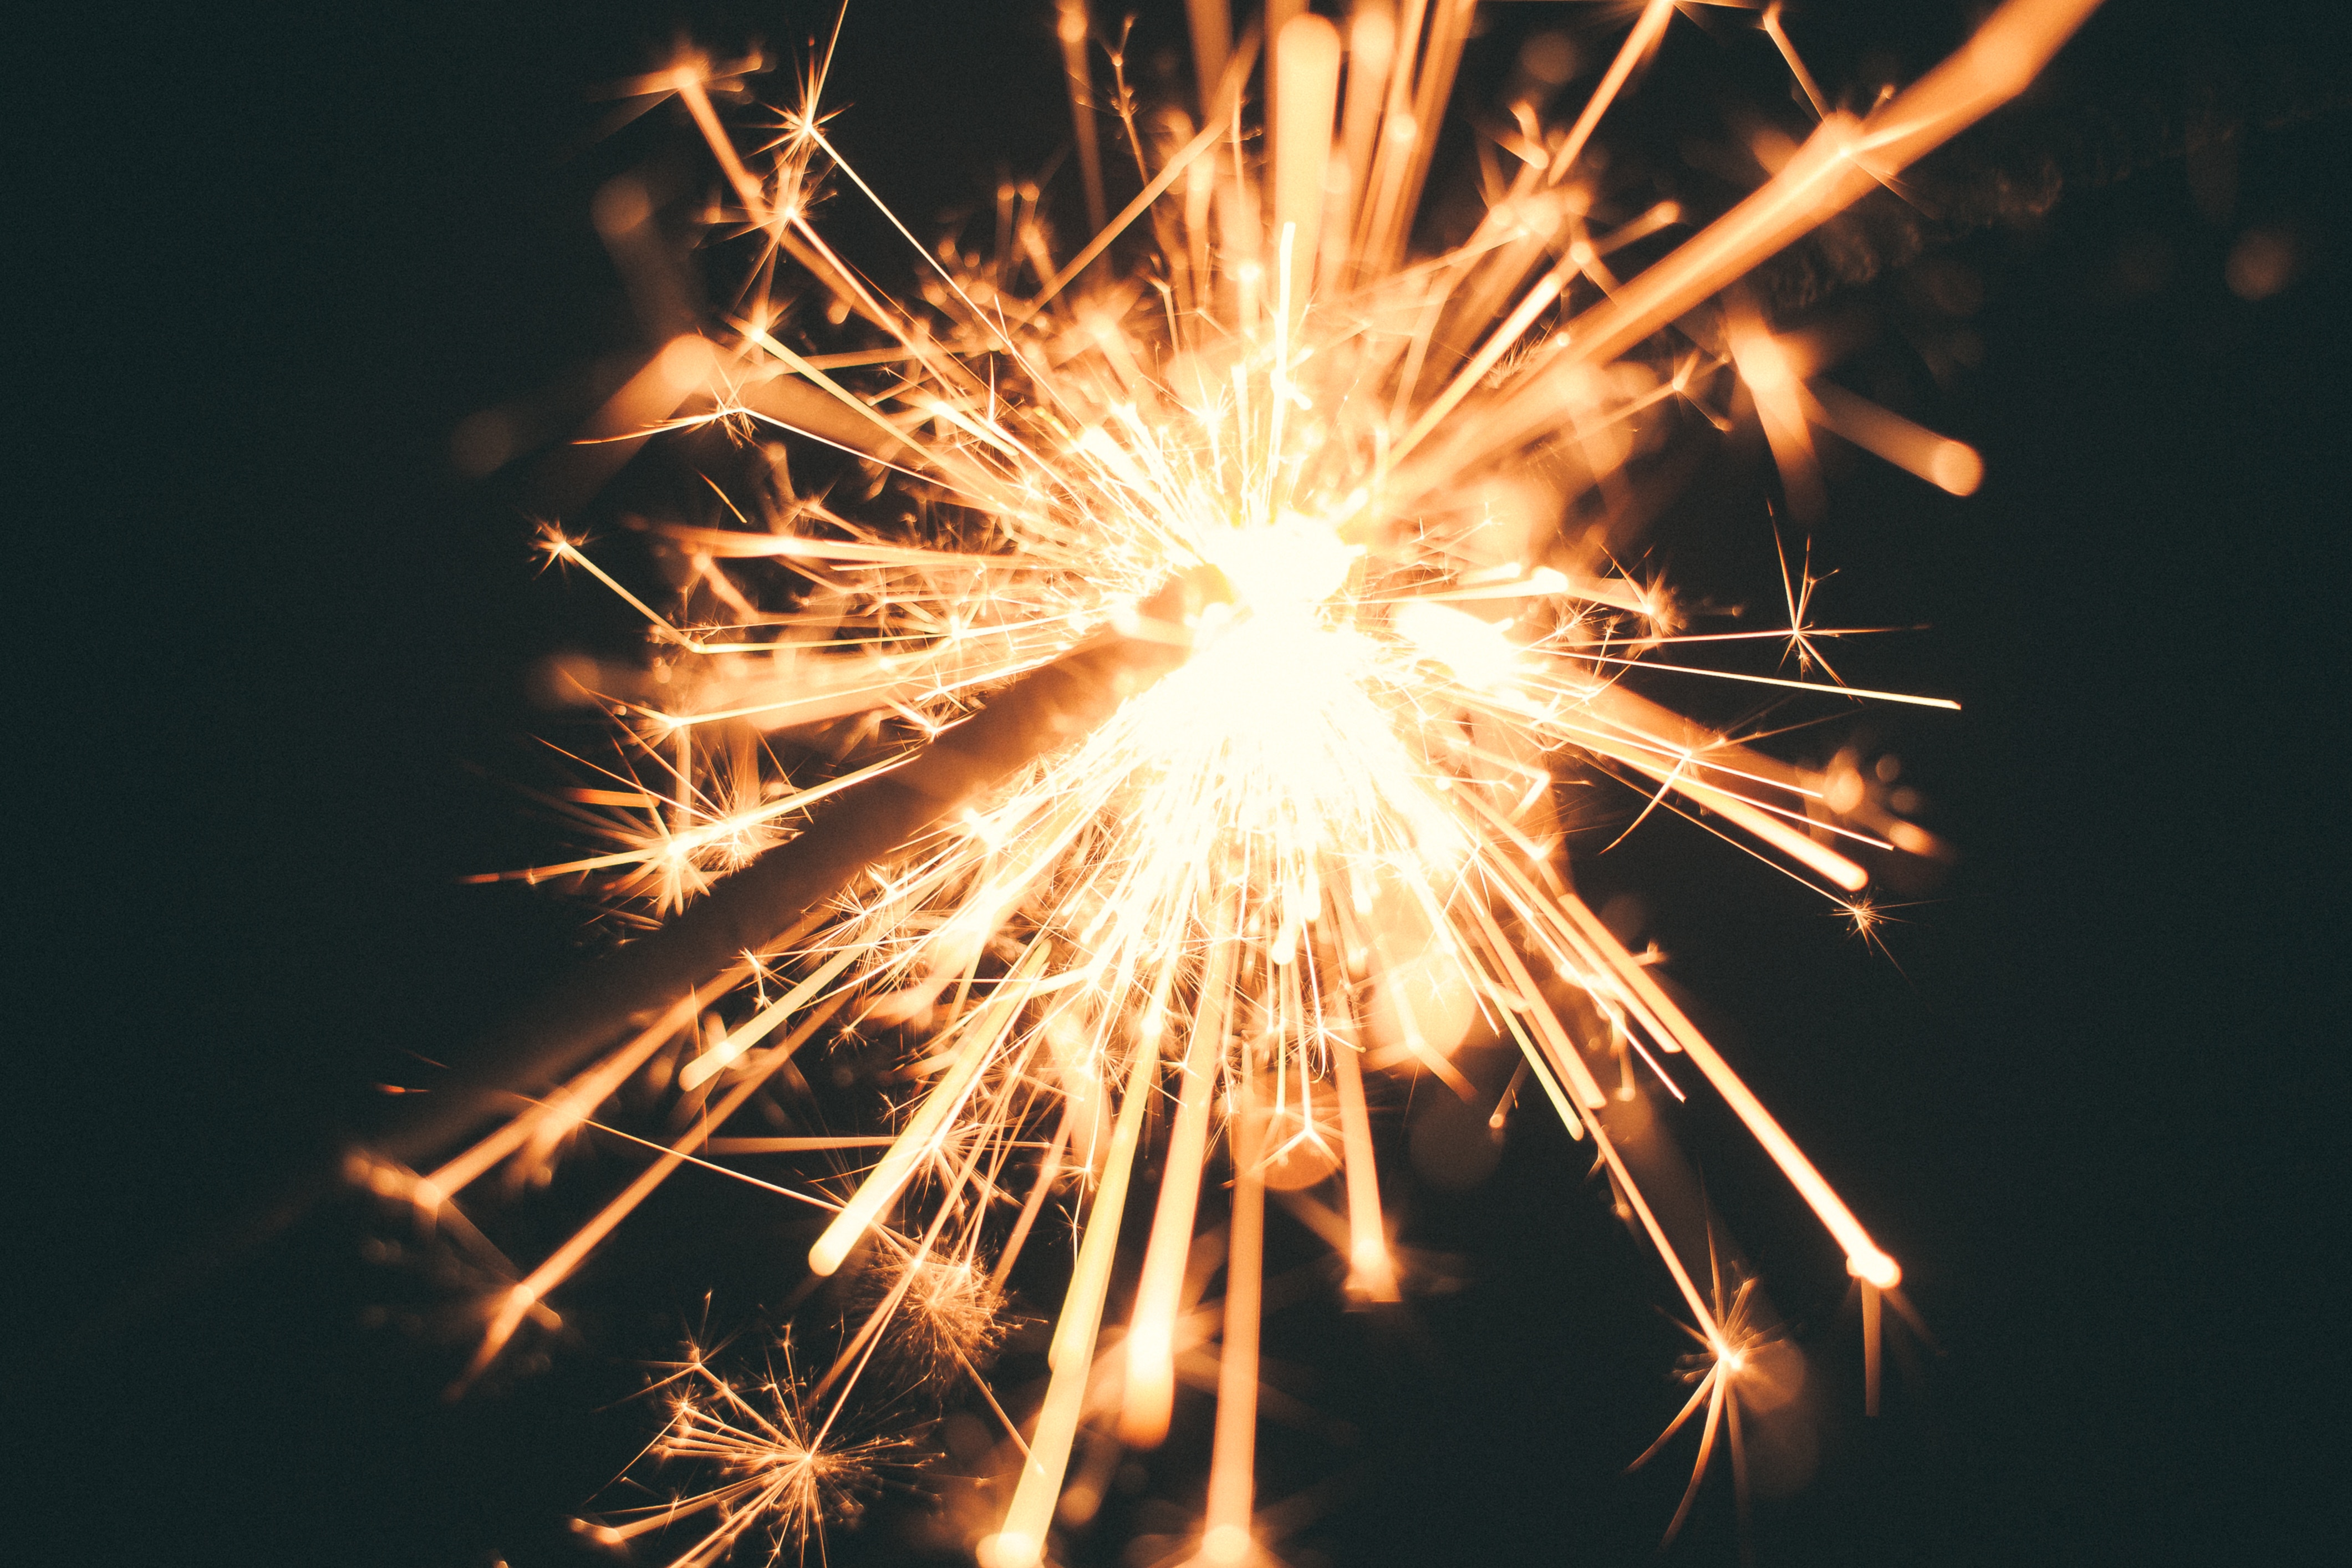 10 Ideas for a Fun and Sober New Year's Eve